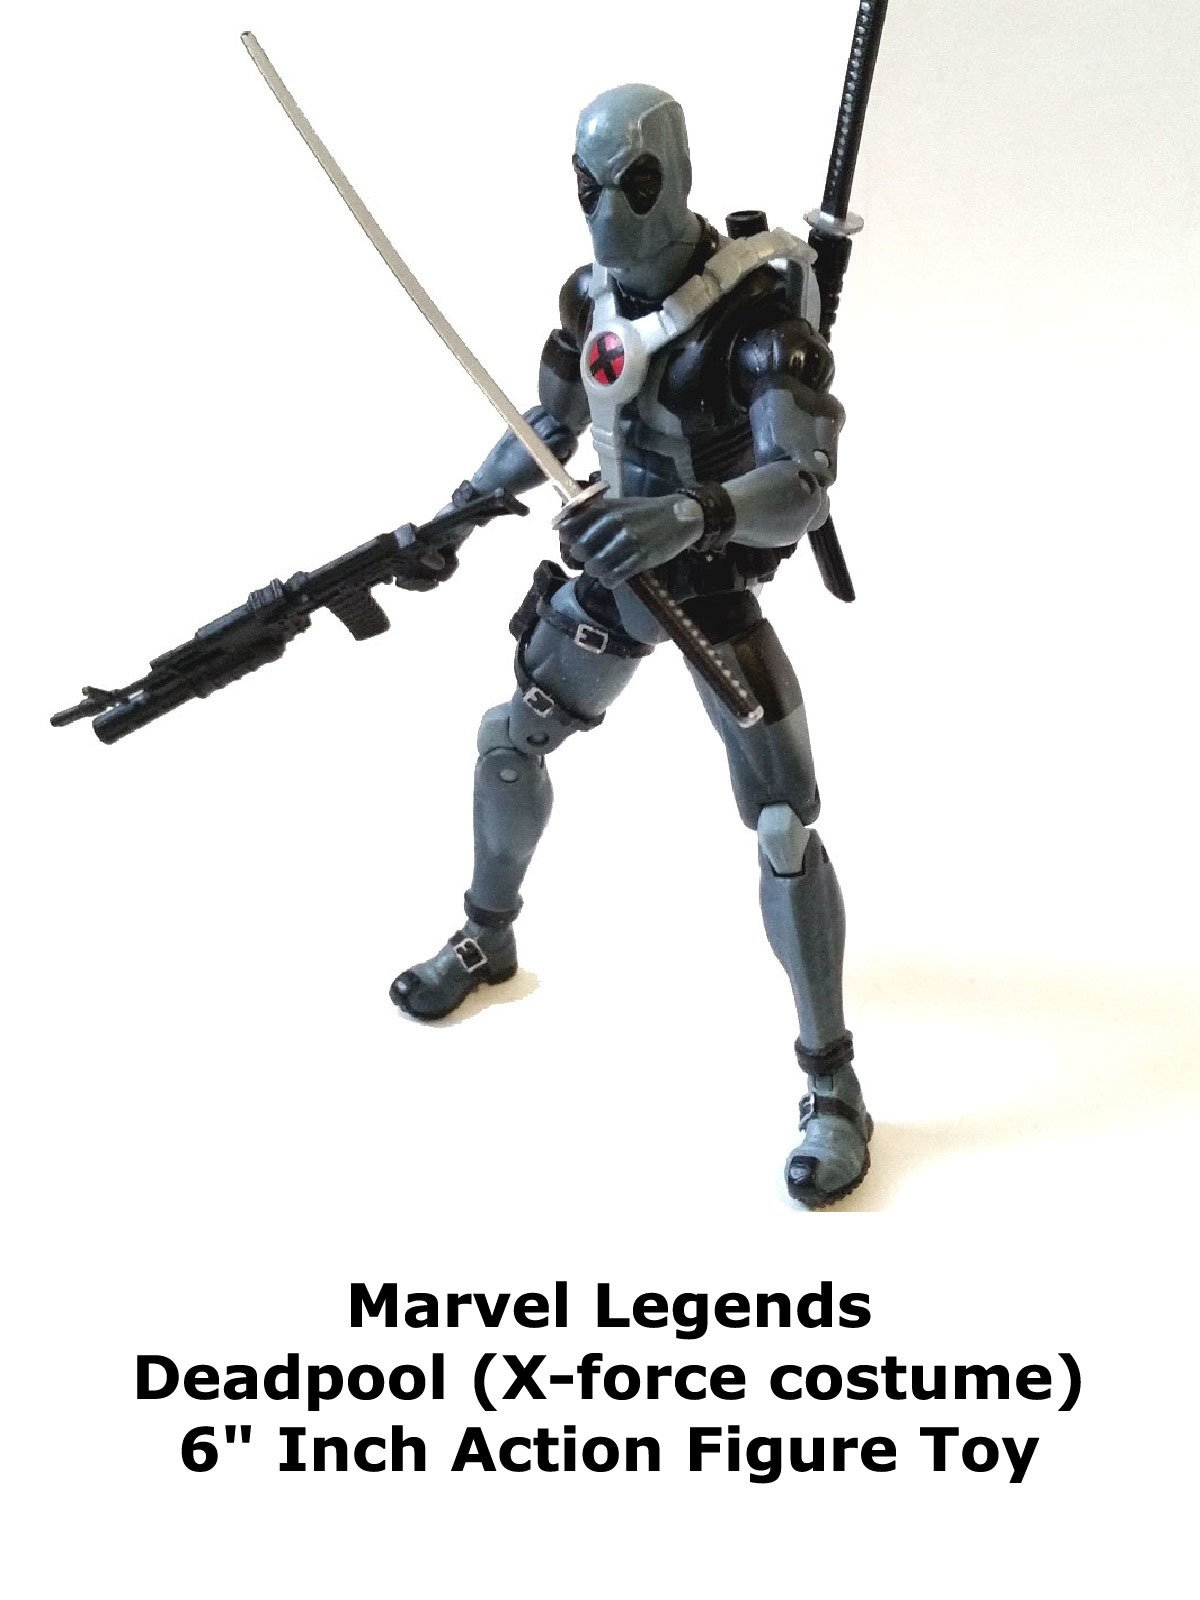 "Review: Marvel Legends Deadpool (X-force costume) 6"" Inch Action Figure Toy"